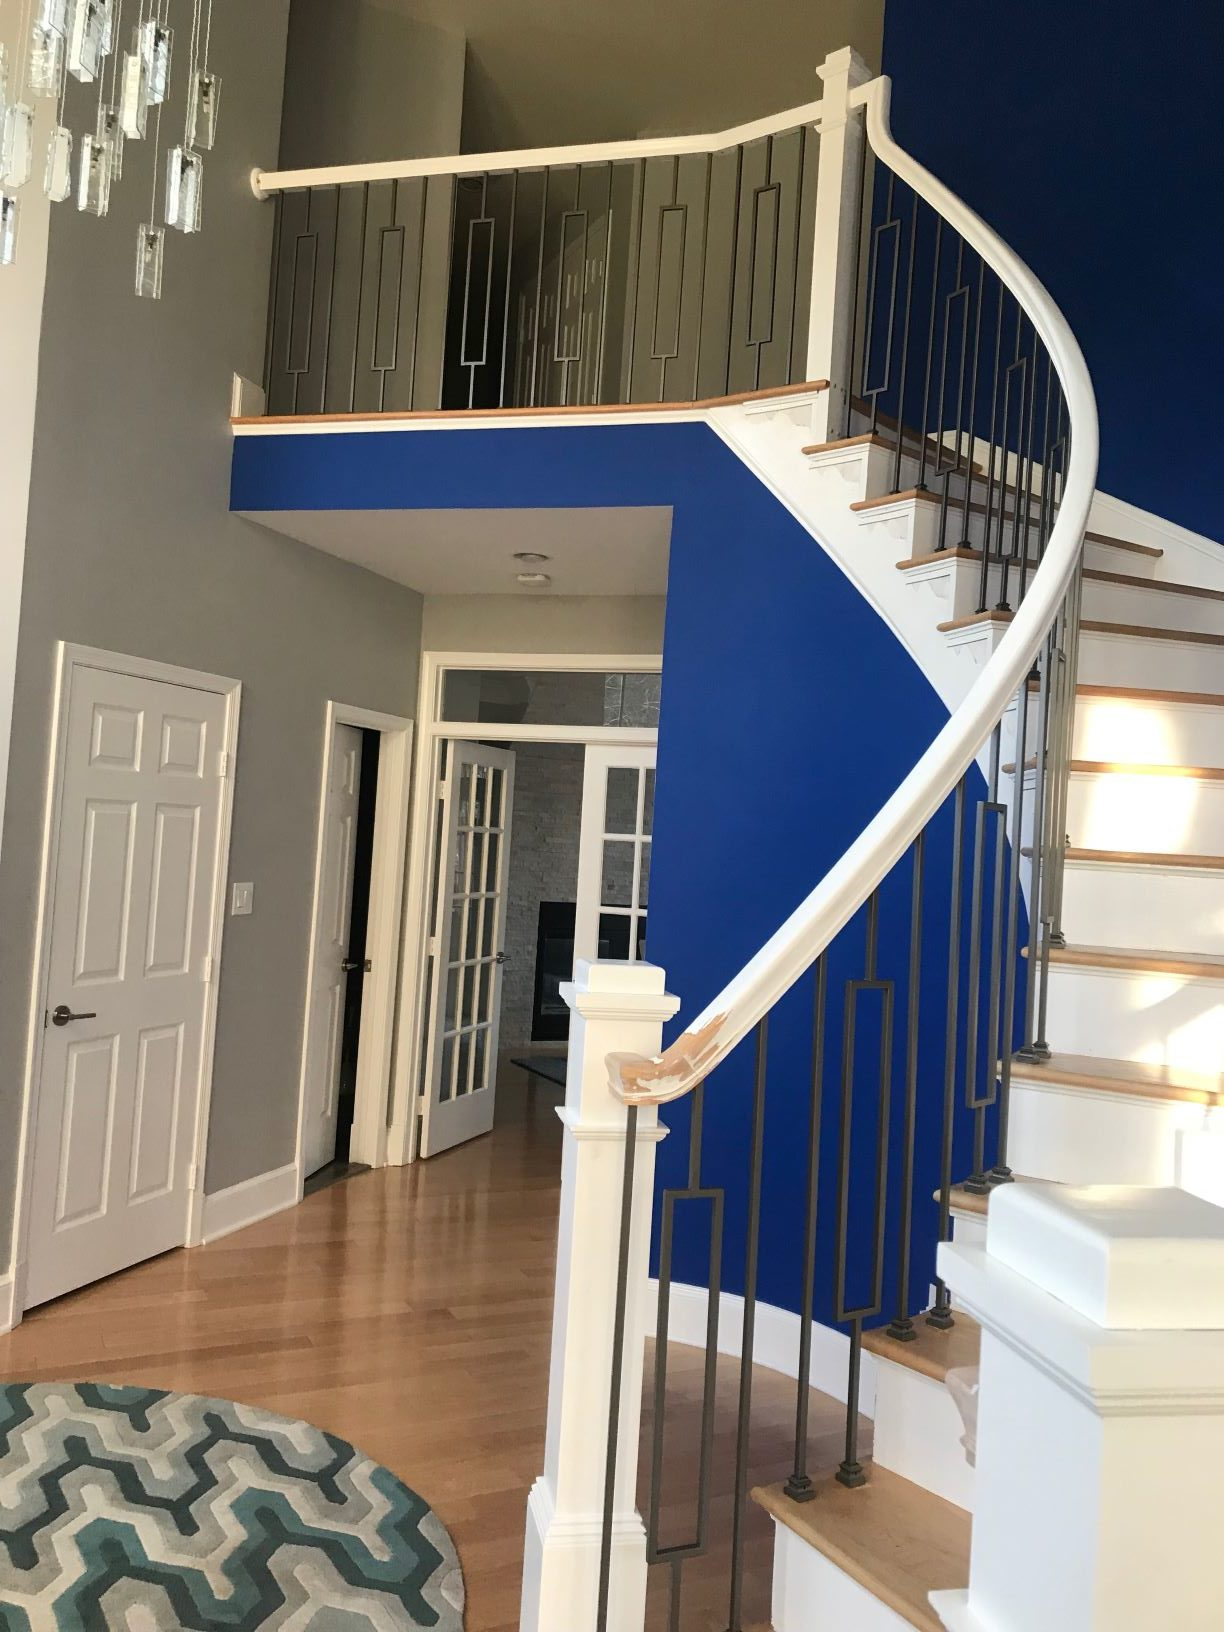 H-Balusters-Blue-0219